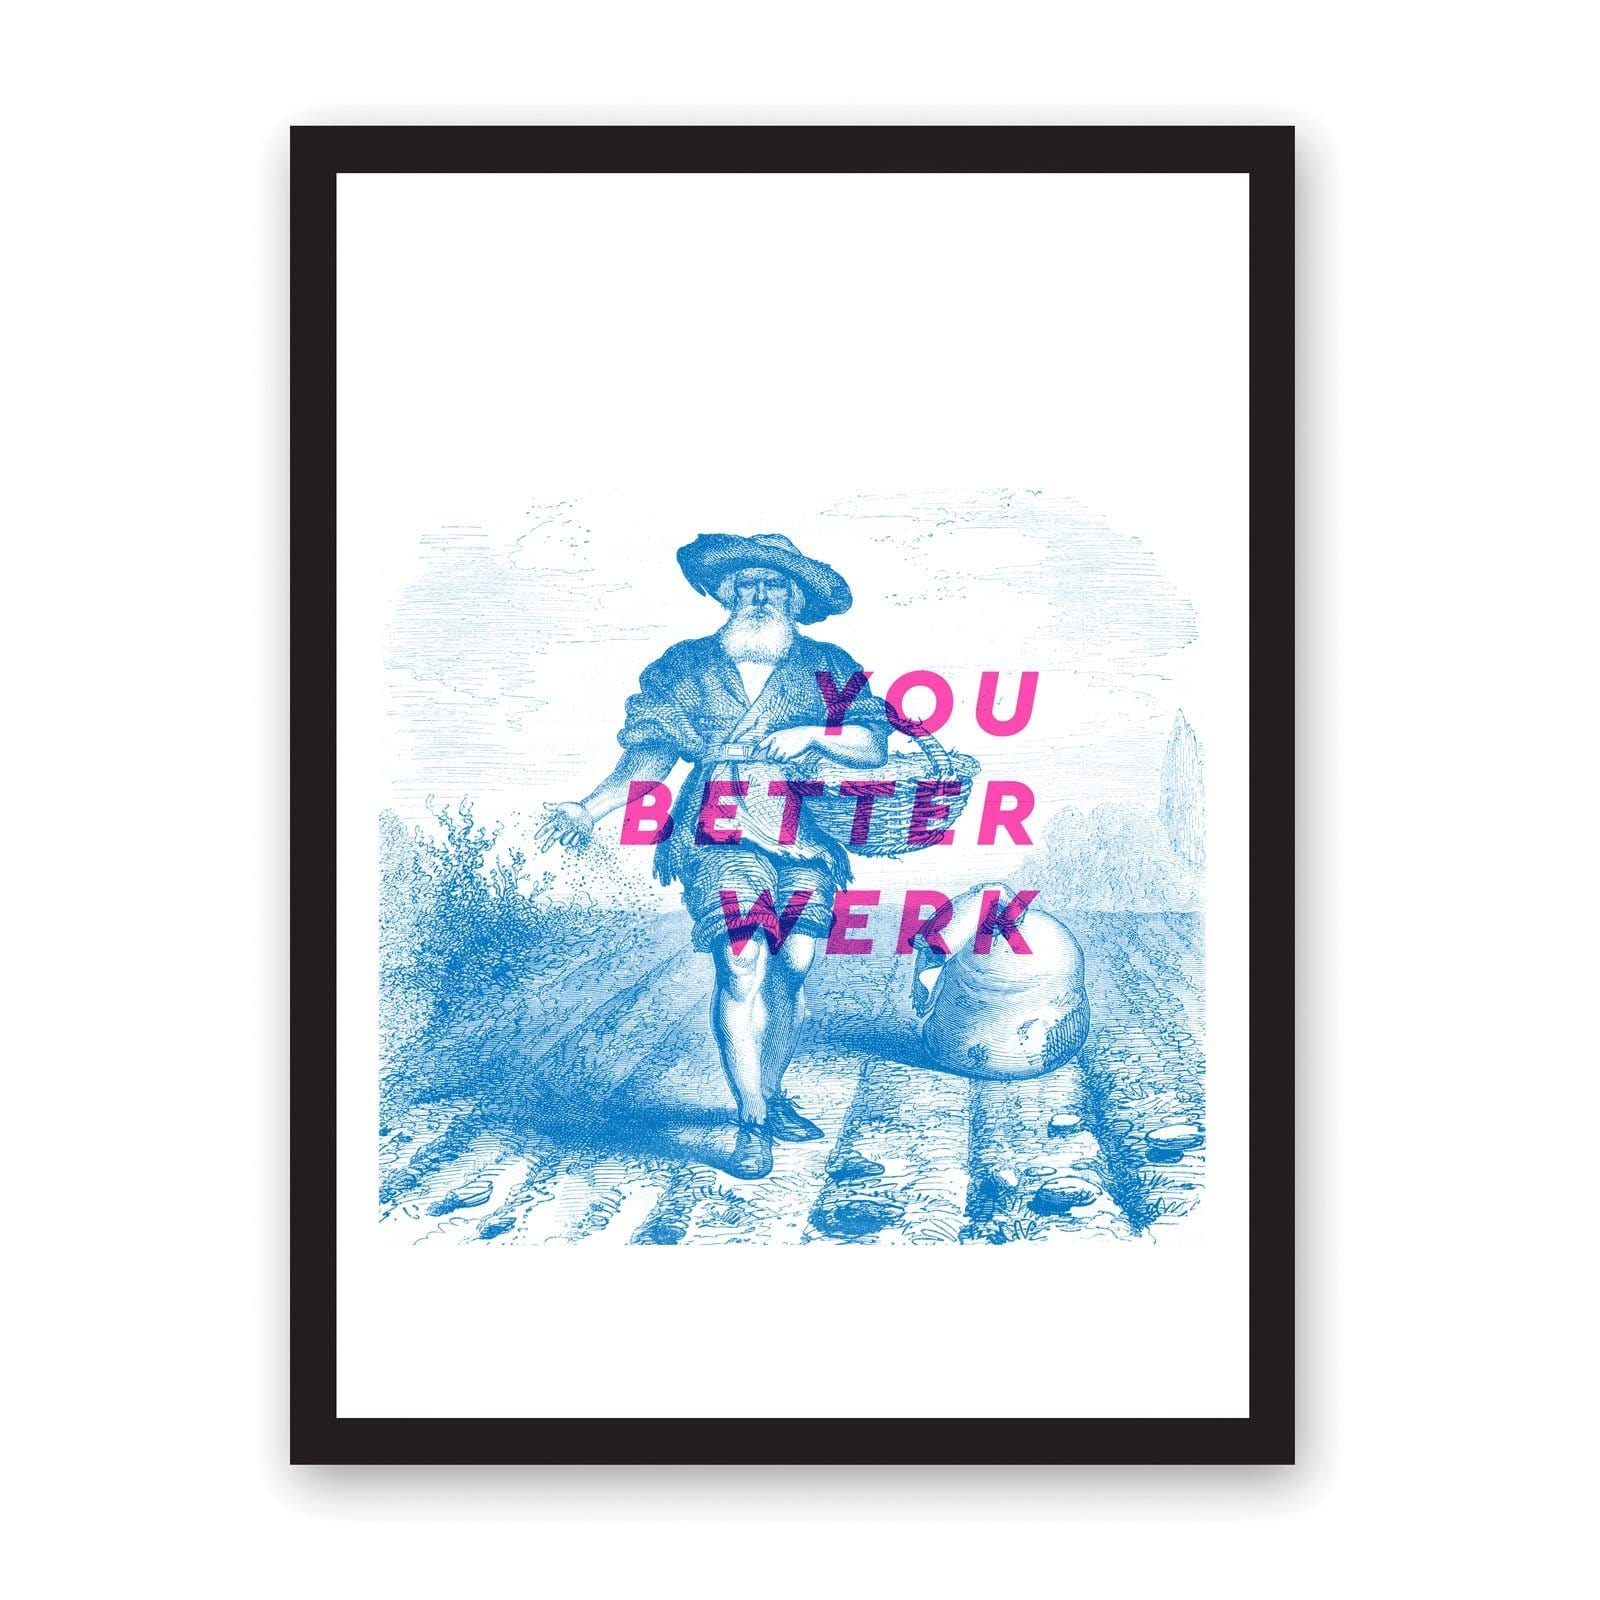 White paper with blue illustrated man in field, with wording You Better Werk pink semi-transparent working in capital letters